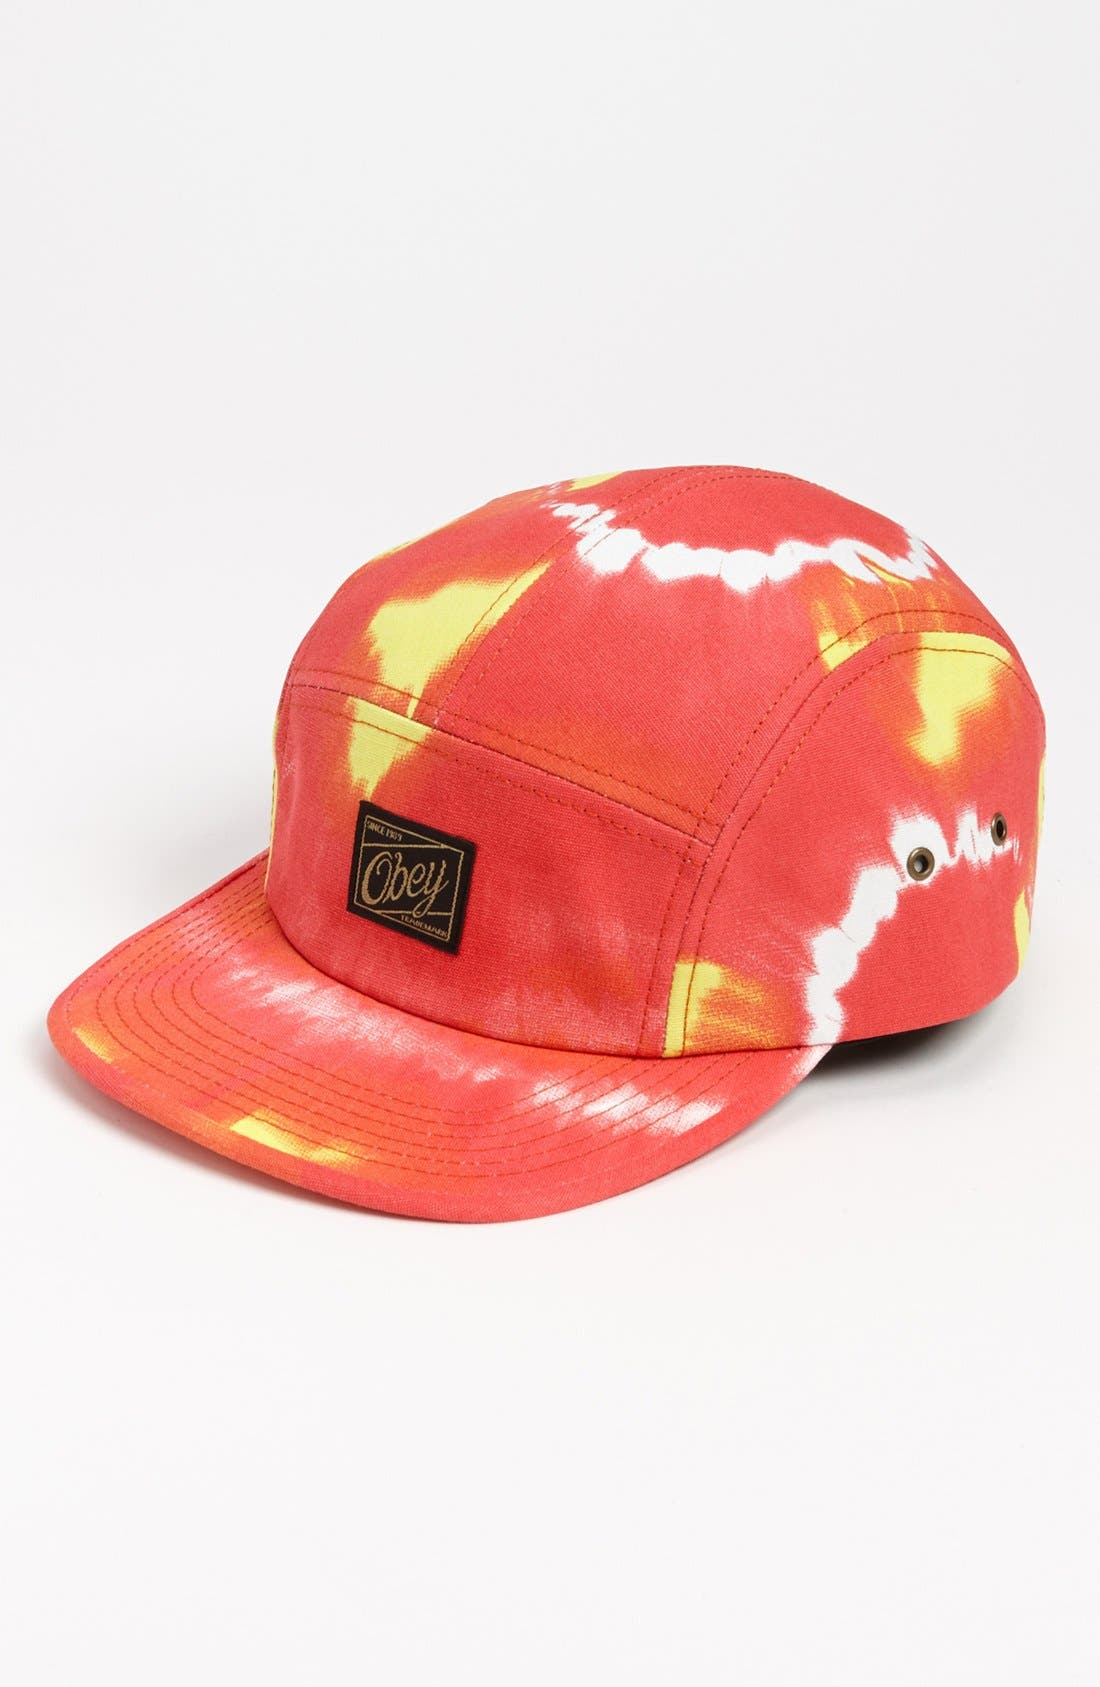 Main Image - Obey 'Jerry' Hat